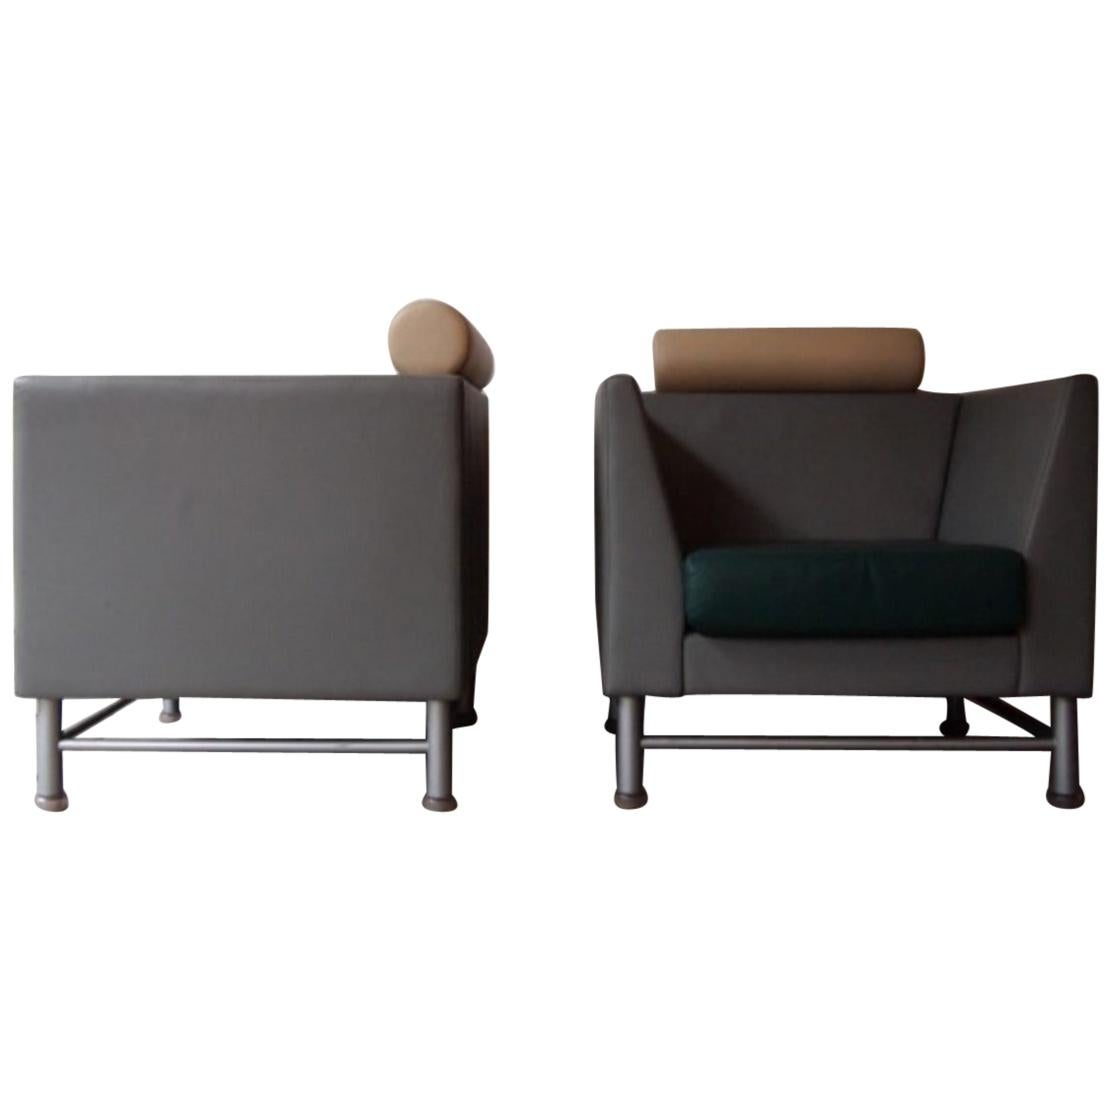 """Pair of 1980s """"East Side"""" Club Lounge Chair by Ettore Sottsass and Knoll"""